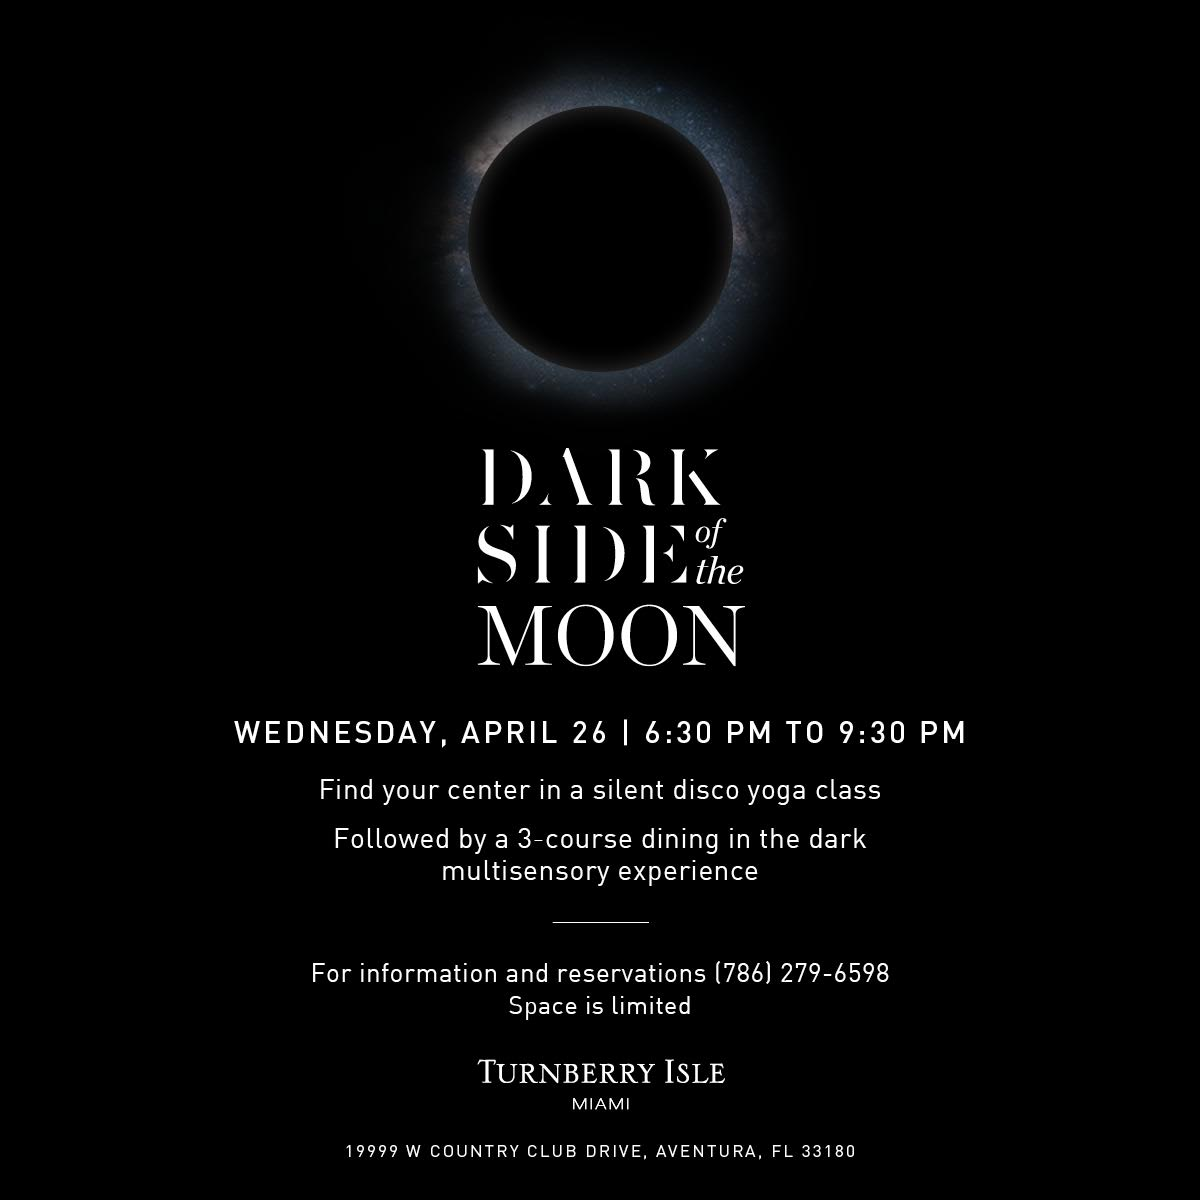 Dark Side of the Moon at Turnberry Isle Miami